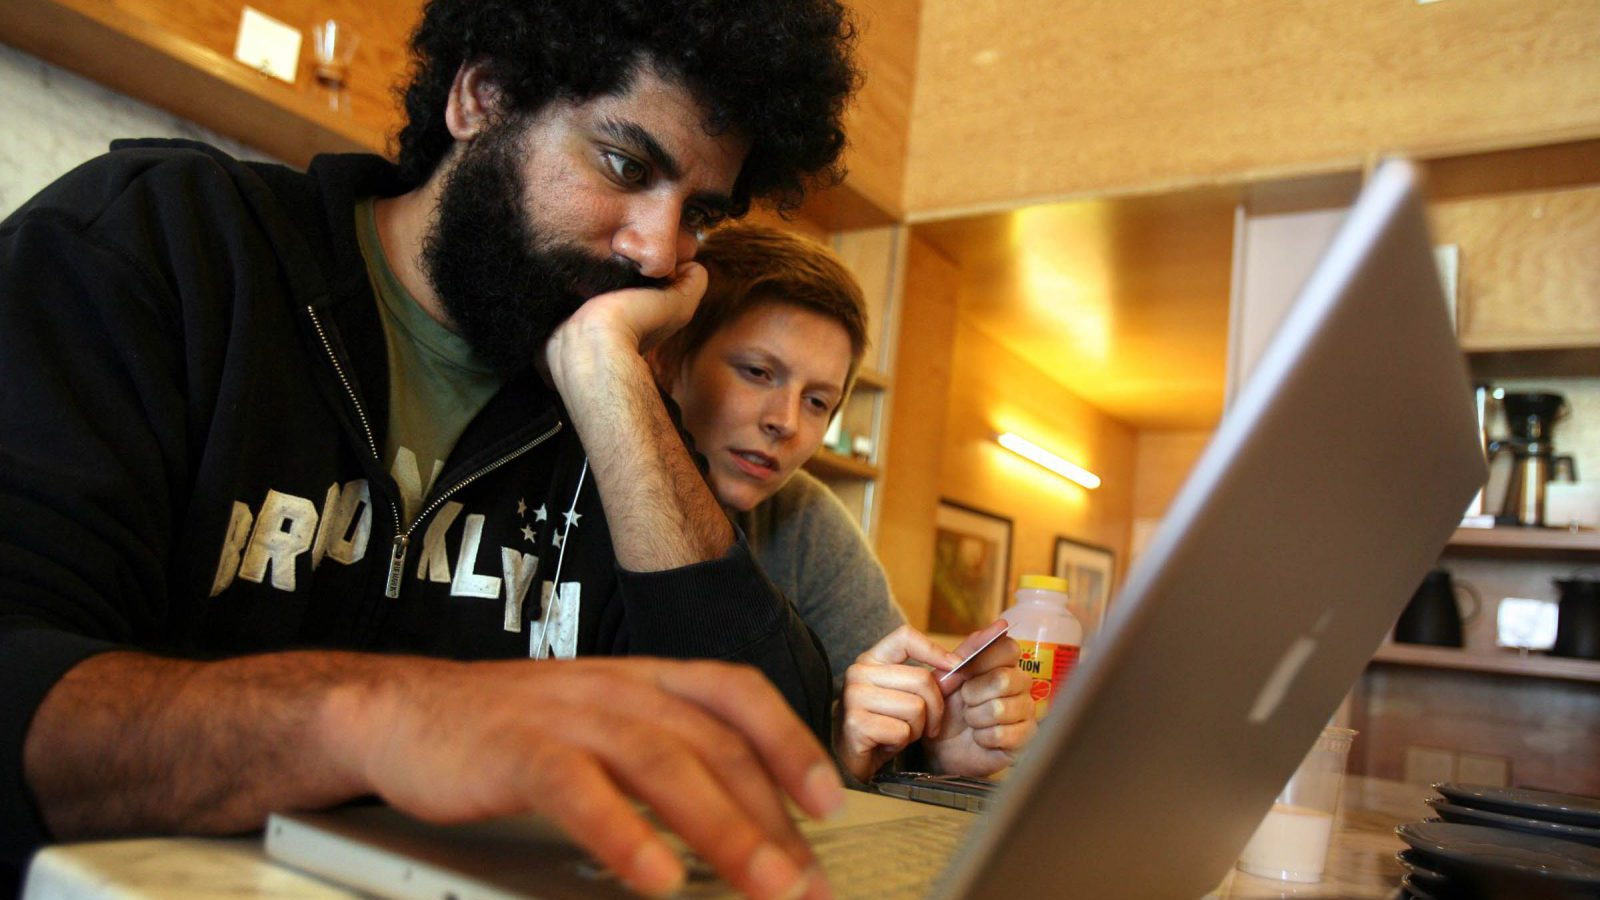 Writer and actor Mousa Kraish, left, looks at his computer with friend Deanna Mustard at the Intelligentsia coffee shop in Los Angeles, Wednesday Feb. 13, 2008. Kraish is not a Writers Guild of America member. Hollywood writers are back to work after ending their three-month strike.